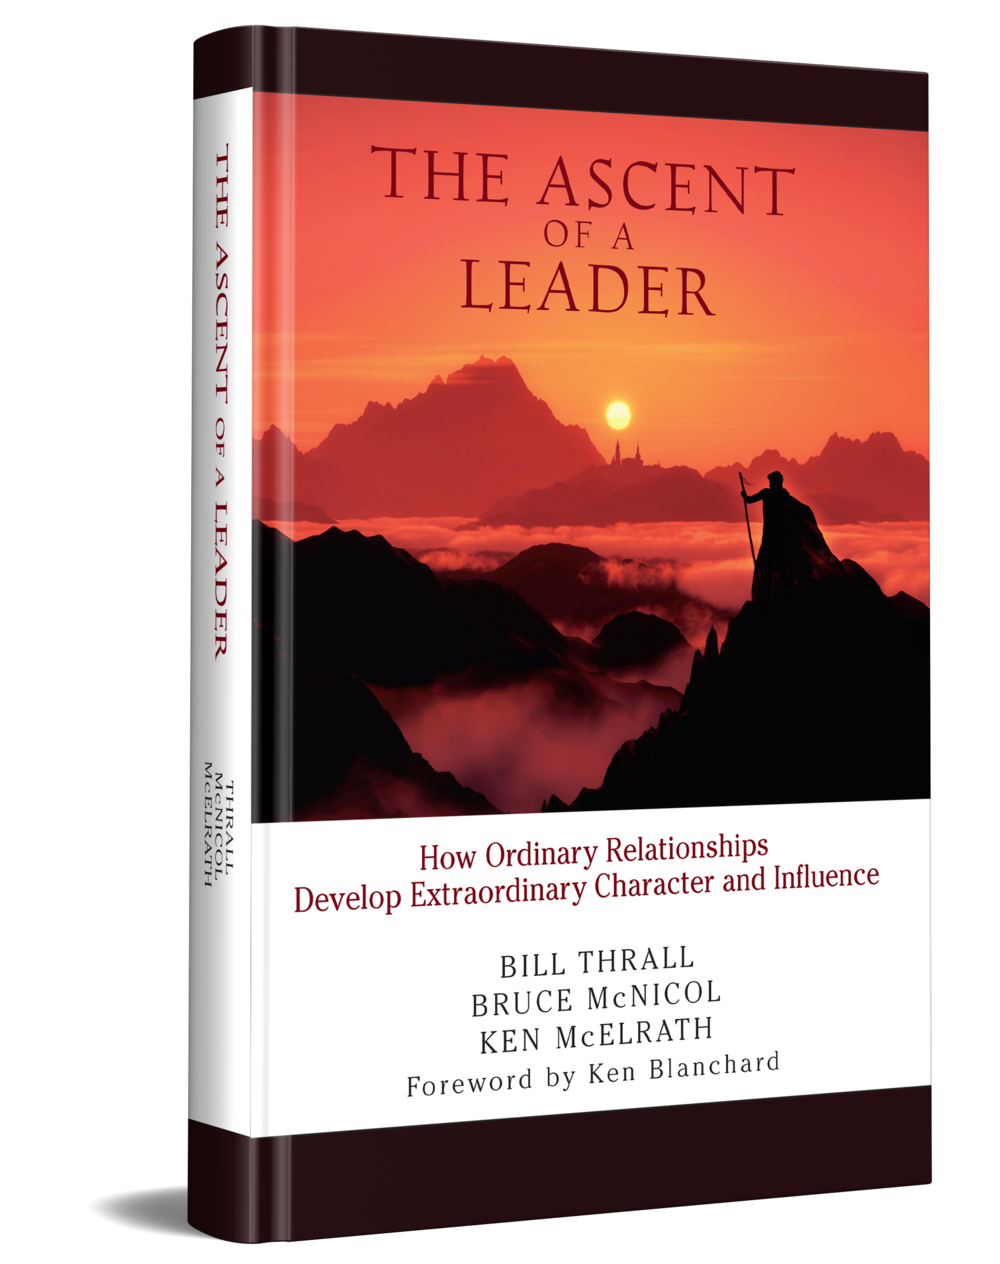 The Ascent of a Leader   This practical, visionary, and hope-filled book guides leaders through a step-by-step process for developing both personal character and a network of important relationships. Develop extraordinary character and influence and foster environments of trust for those you lead.